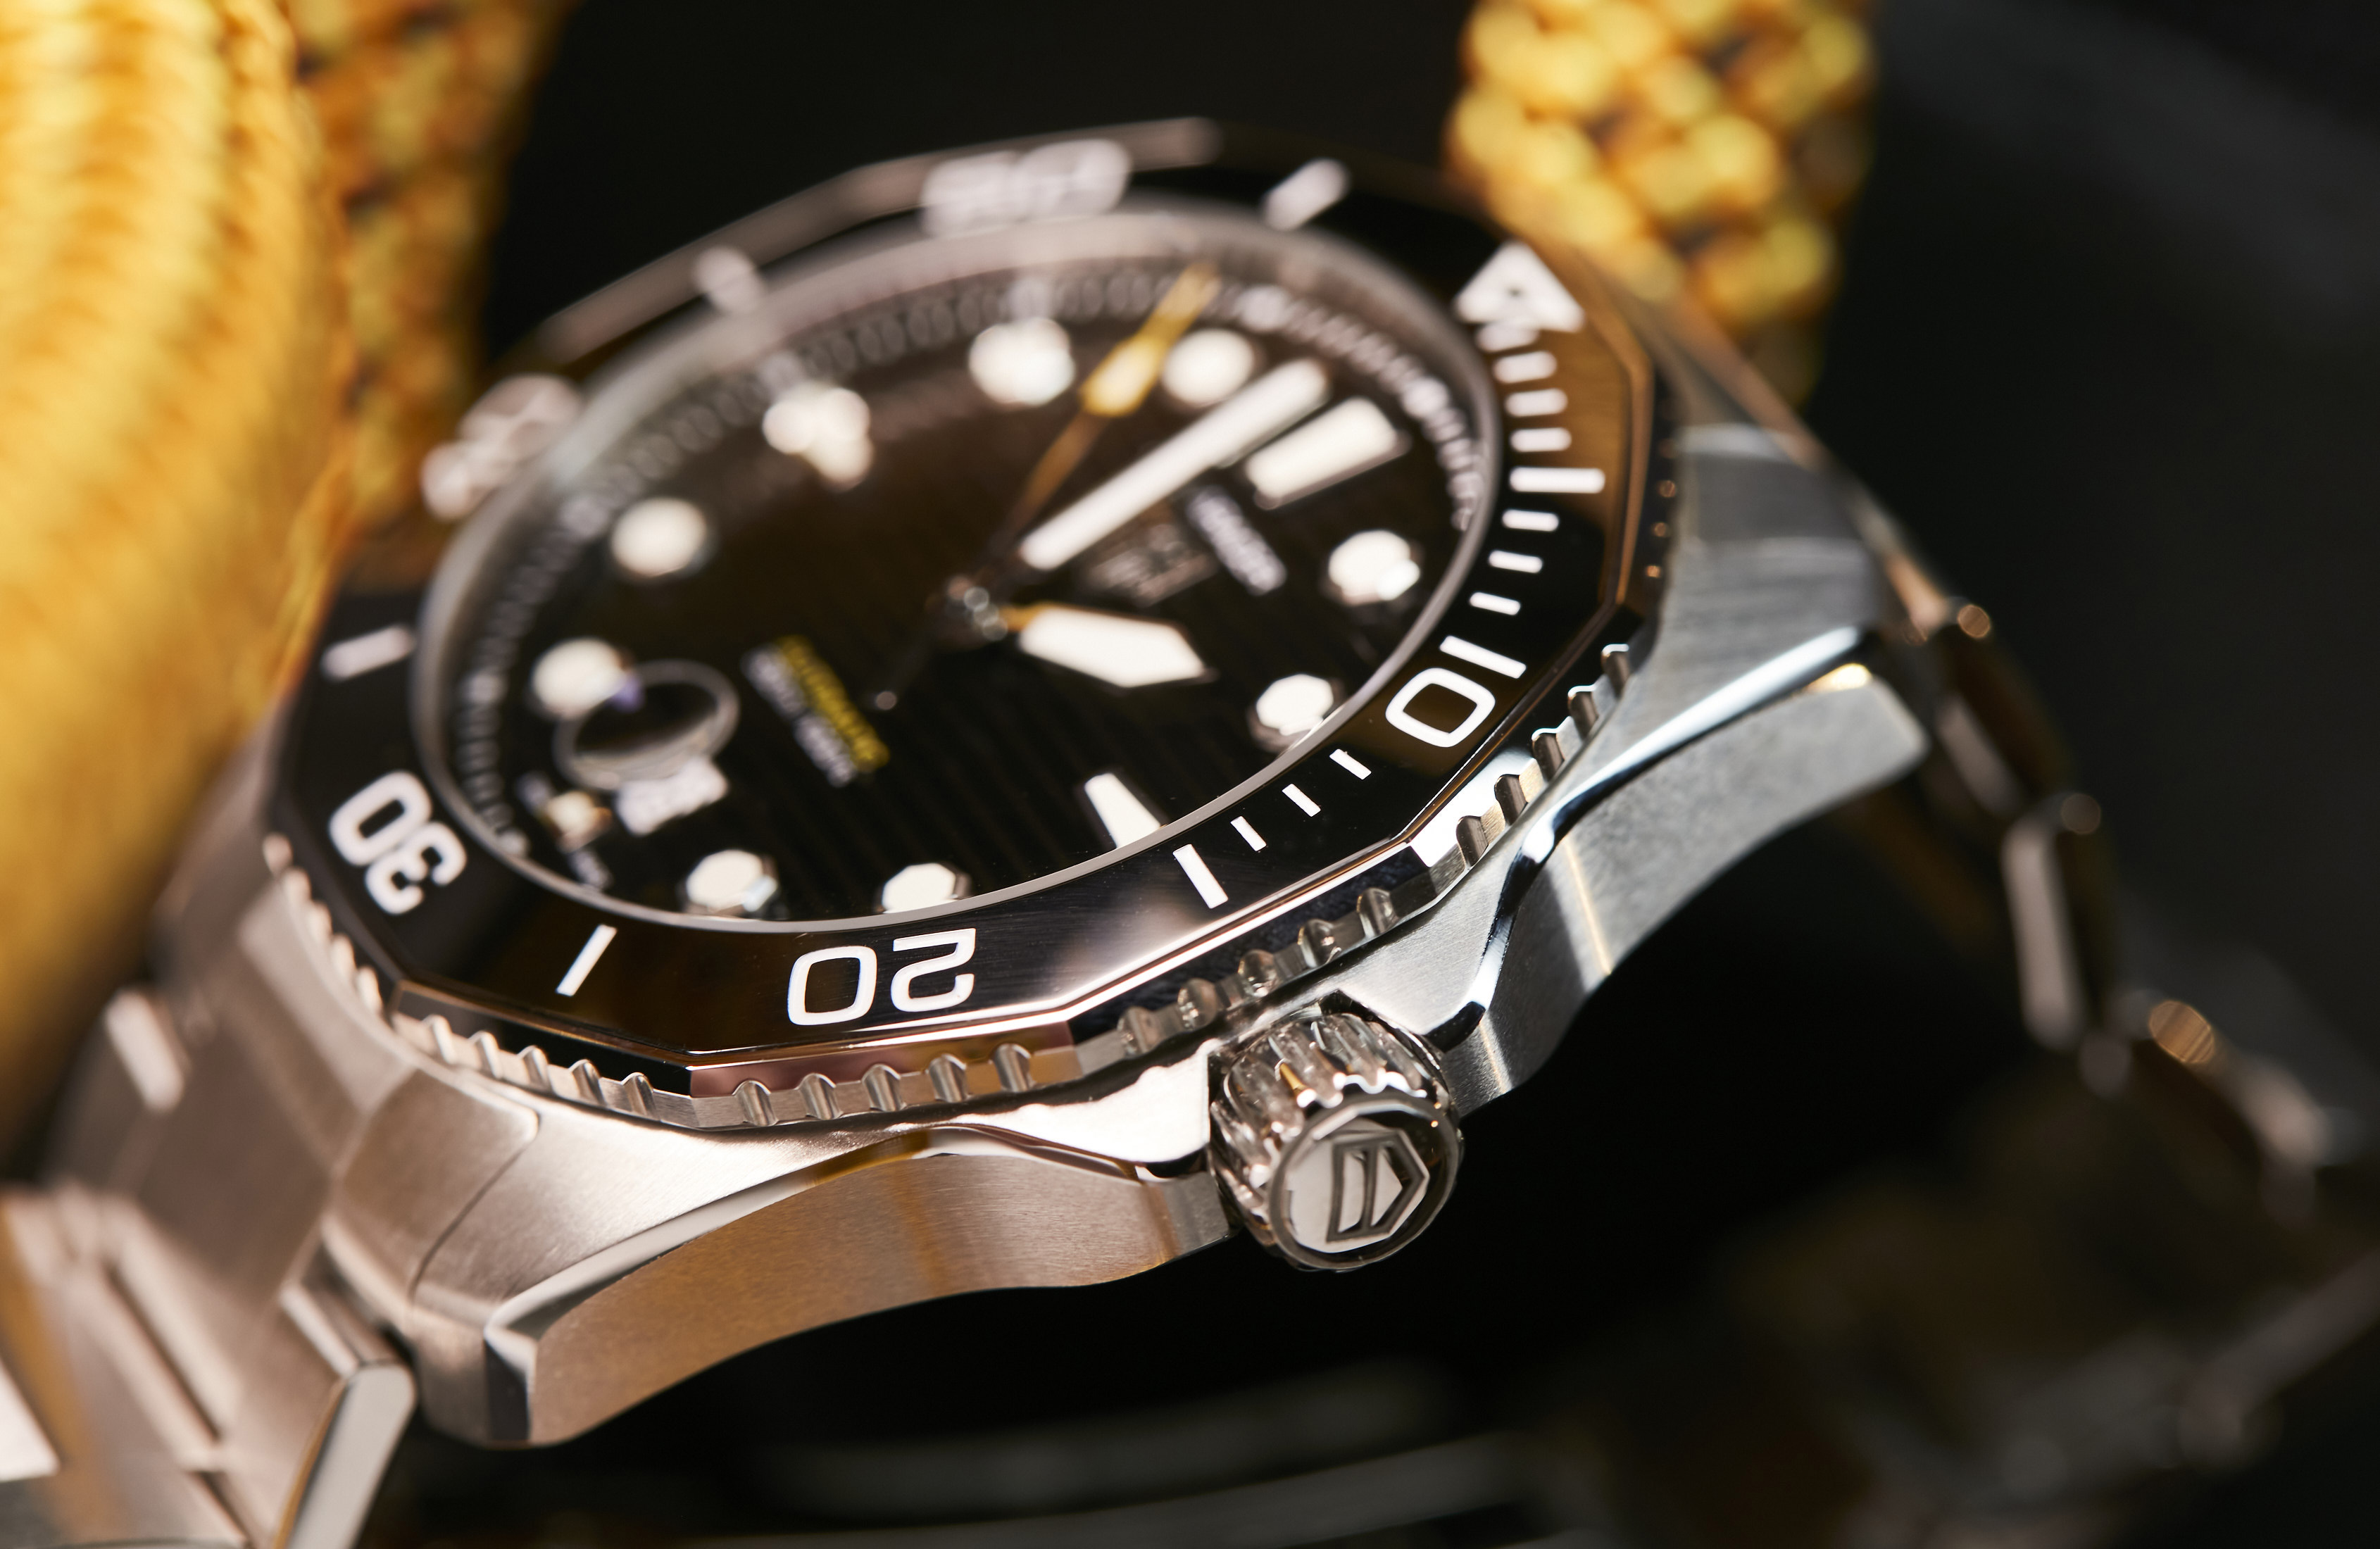 TAG Heuer Aquaracer collection